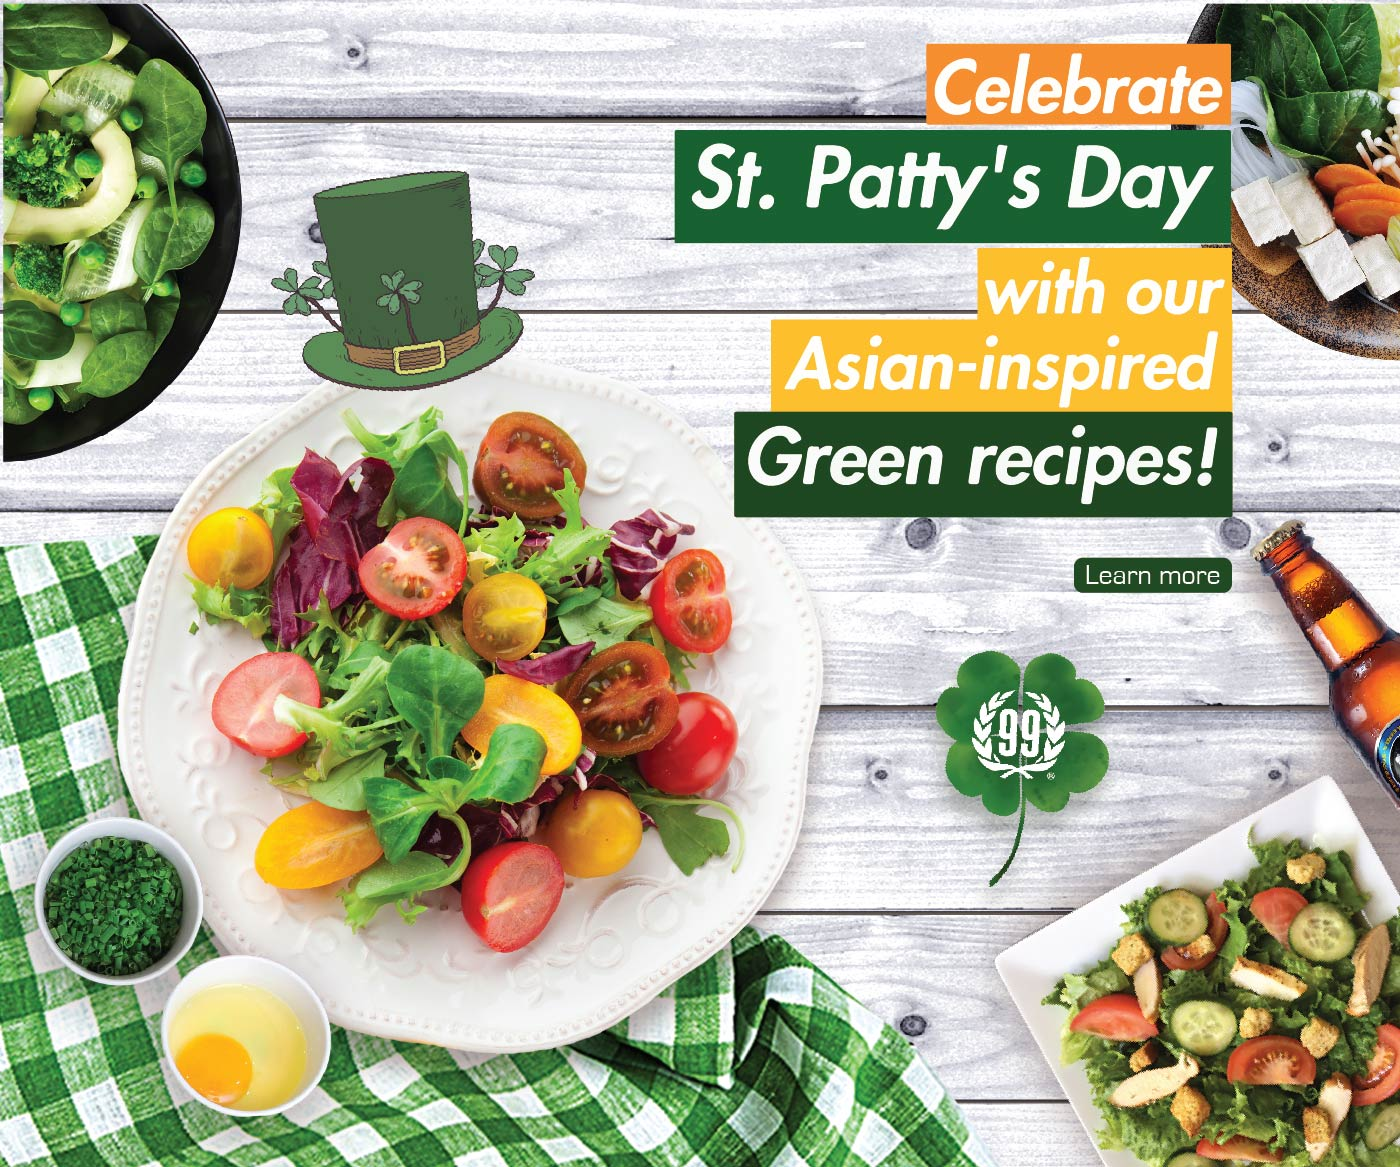 CELEBRATE ST. PATRICK'S DAY WITH 99 RANCH'S ASIAN-INSPIRED GREEN RECIPES